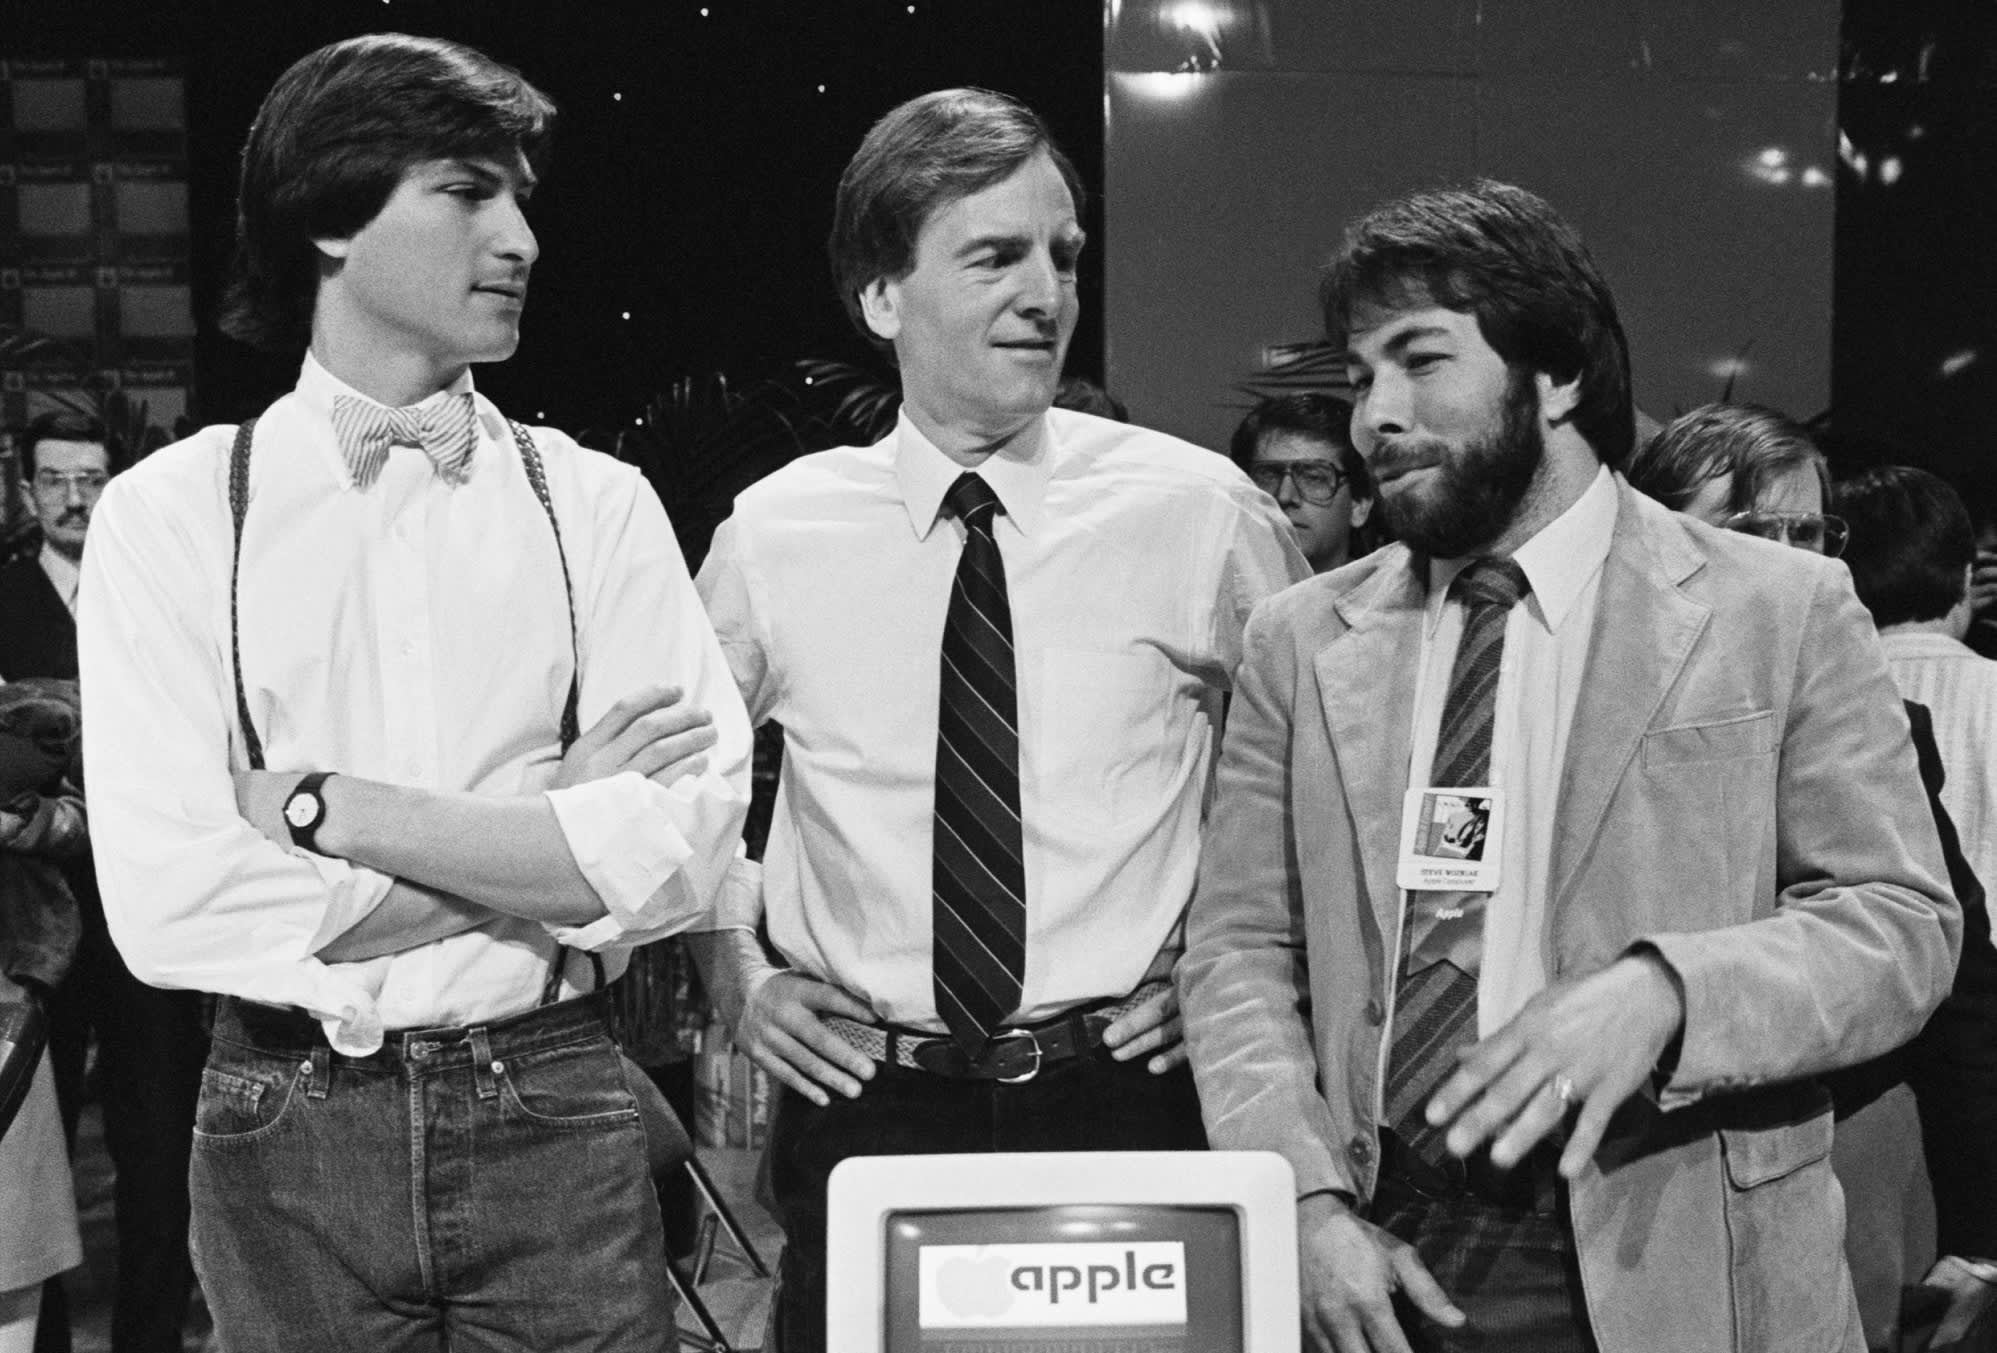 Former Apple CEO John Sculley: 'The way we are educated is going to radically change'